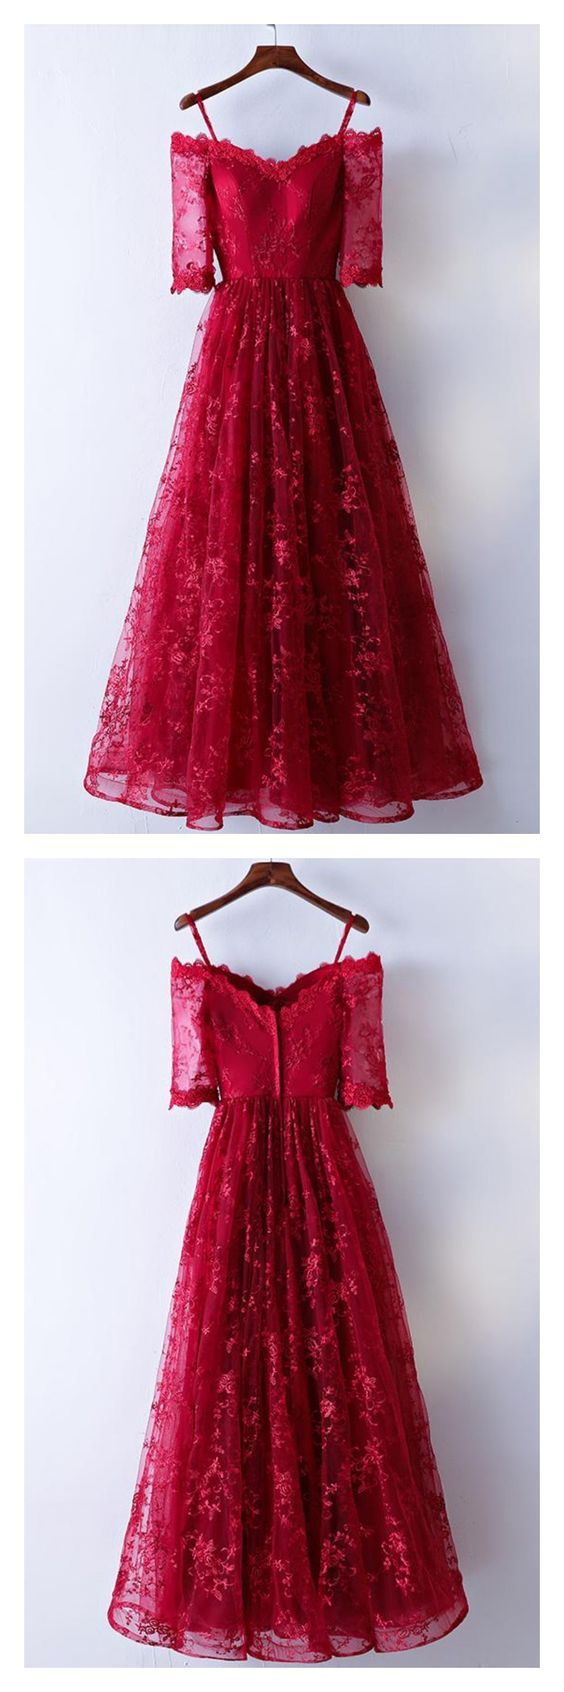 Red half sleeves long prom dresses with lace fashion divaness in